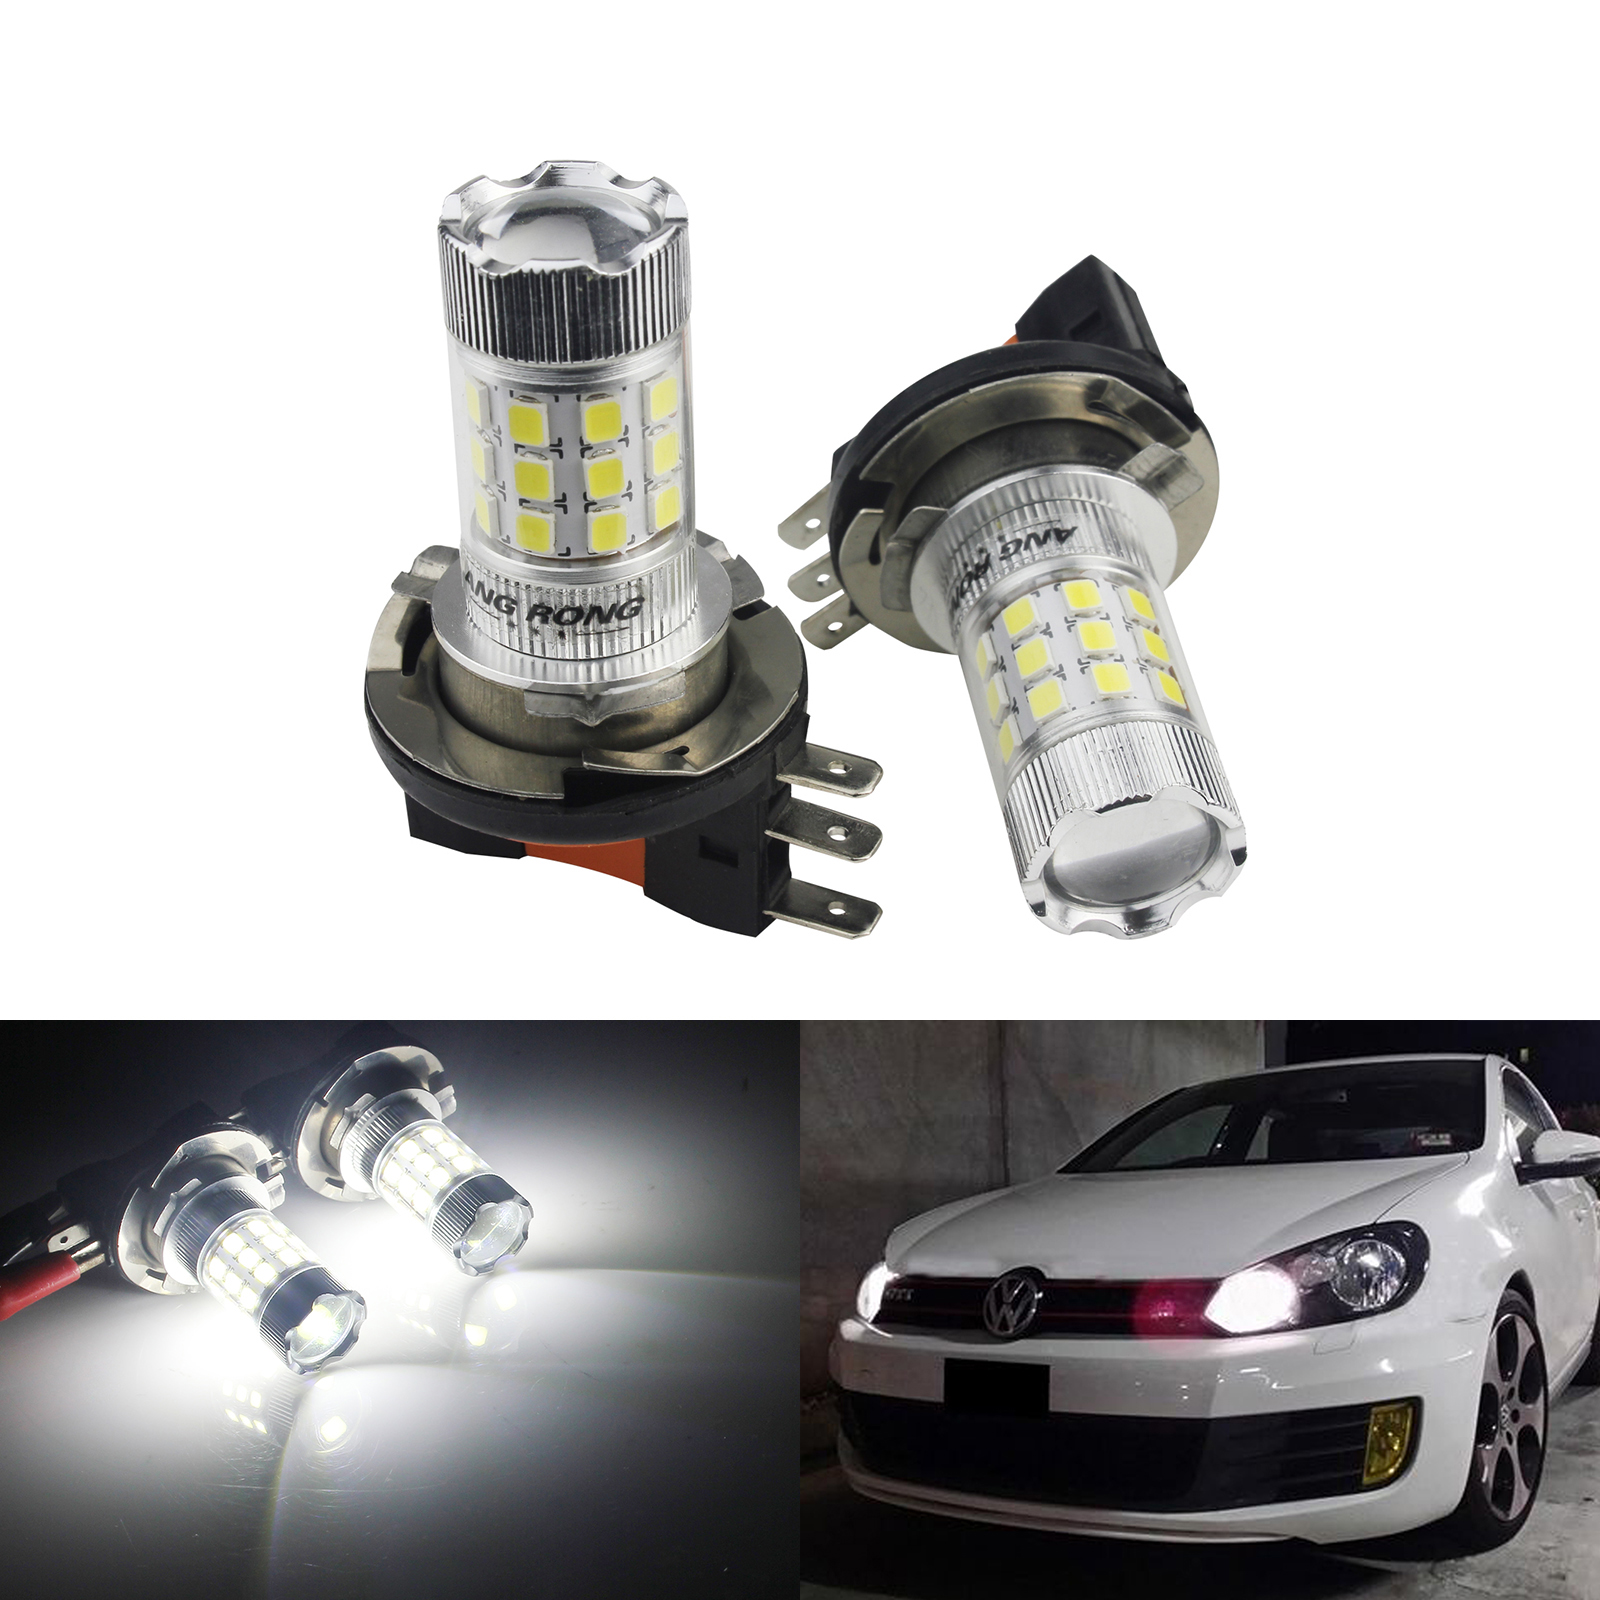 ANGRONG 2x 30W 1600lm H15 64176 LED Headlight <font><b>Daytime</b></font> <font><b>Running</b></font> <font><b>Light</b></font> <font><b>Bulb</b></font> For Audi <font><b>BMW</b></font> VW Ford Fiesta image